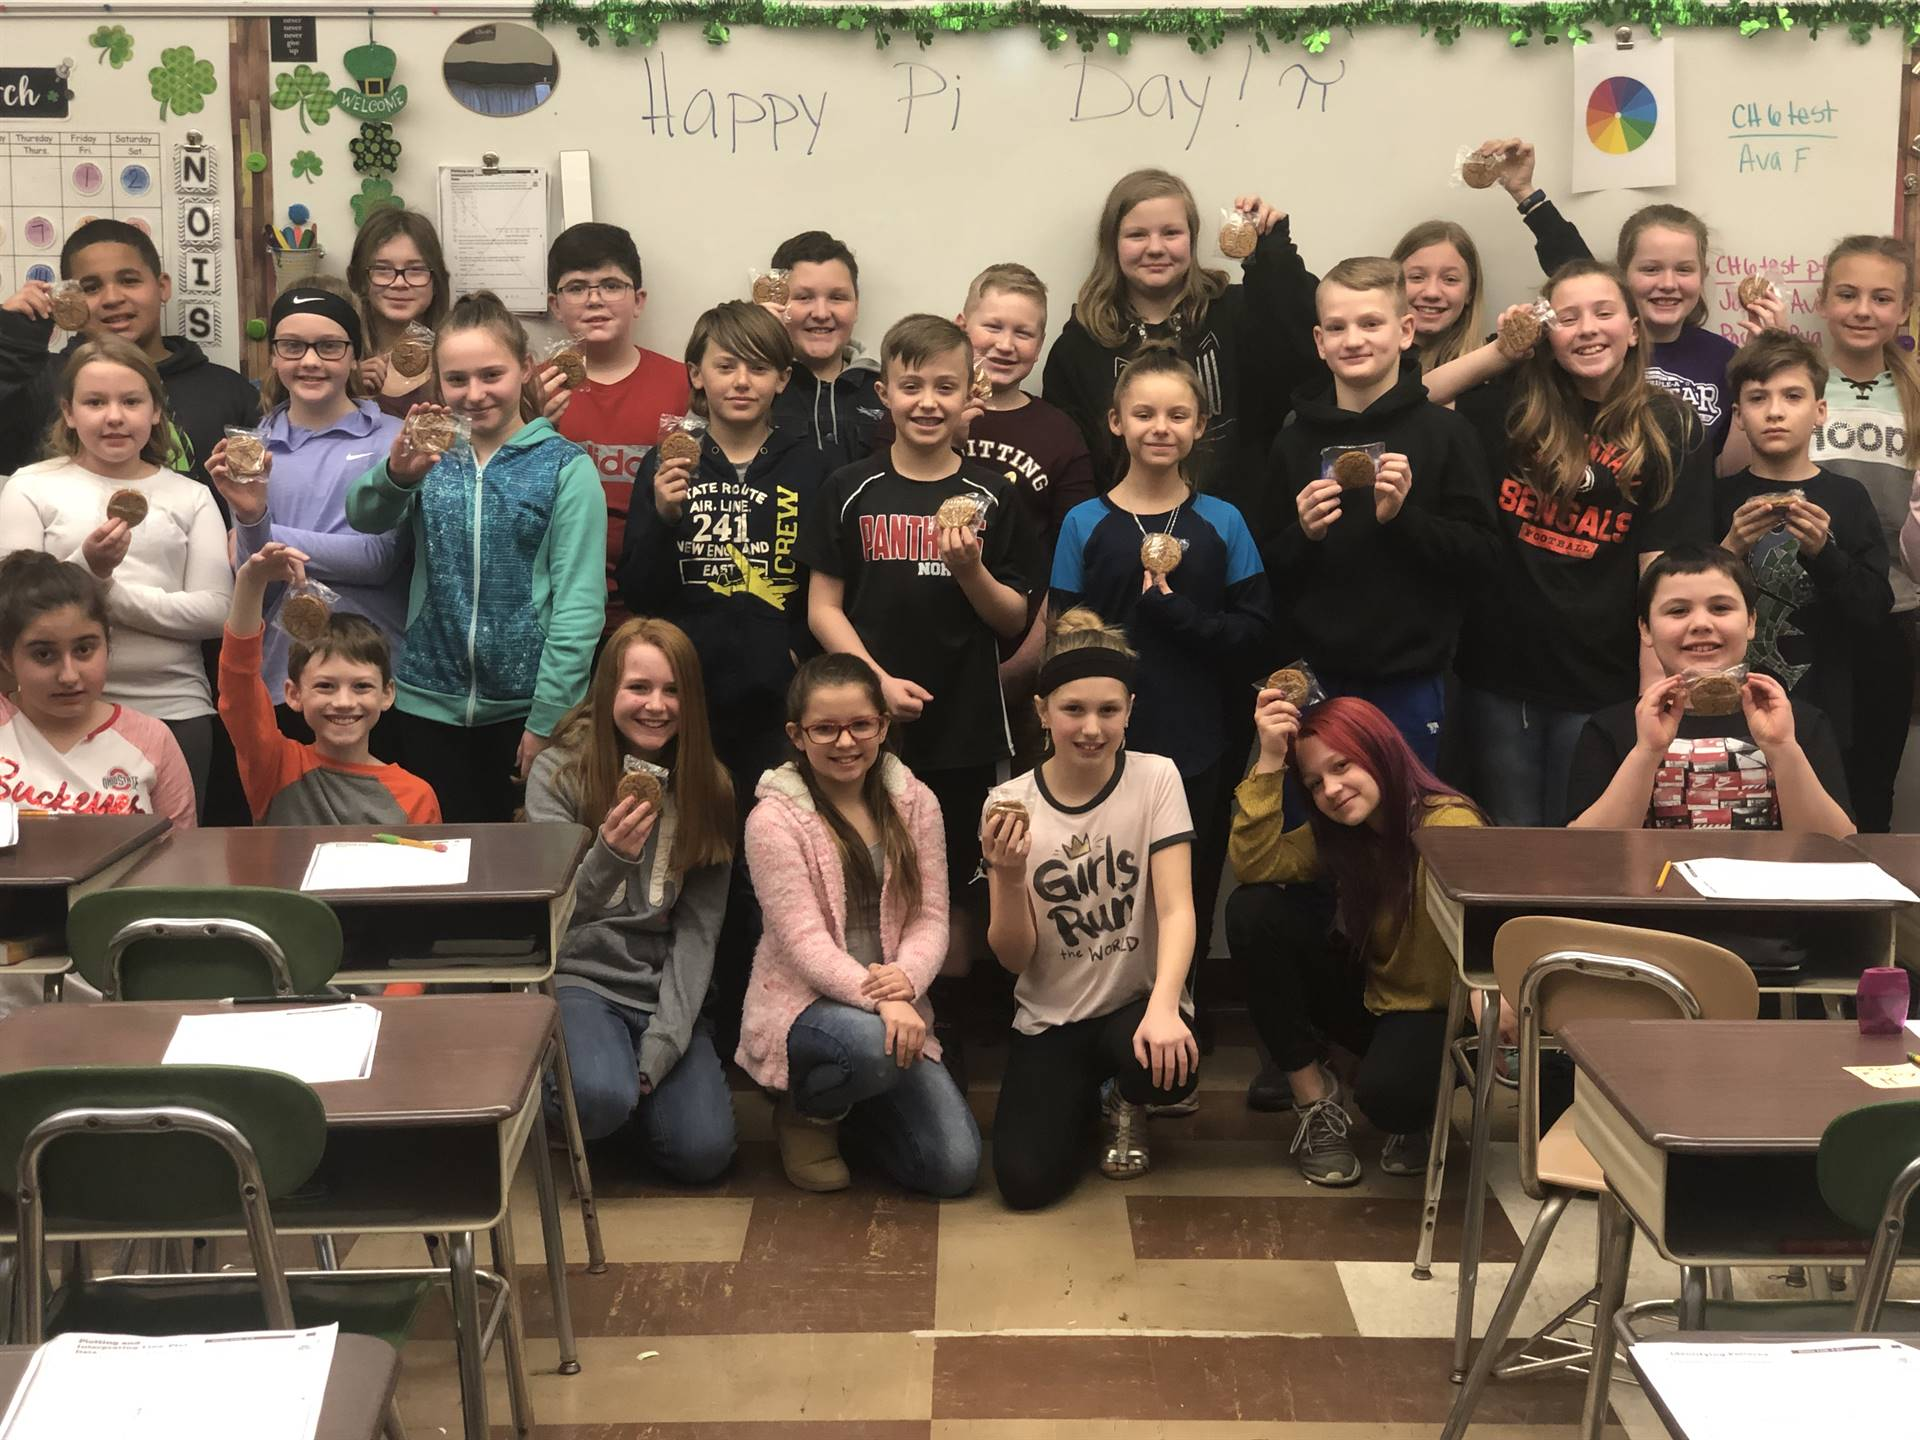 Mrs Flynn and Miss Zita's math class celebrating Pi Day with oatmeal creme pies! Happy 3.14!